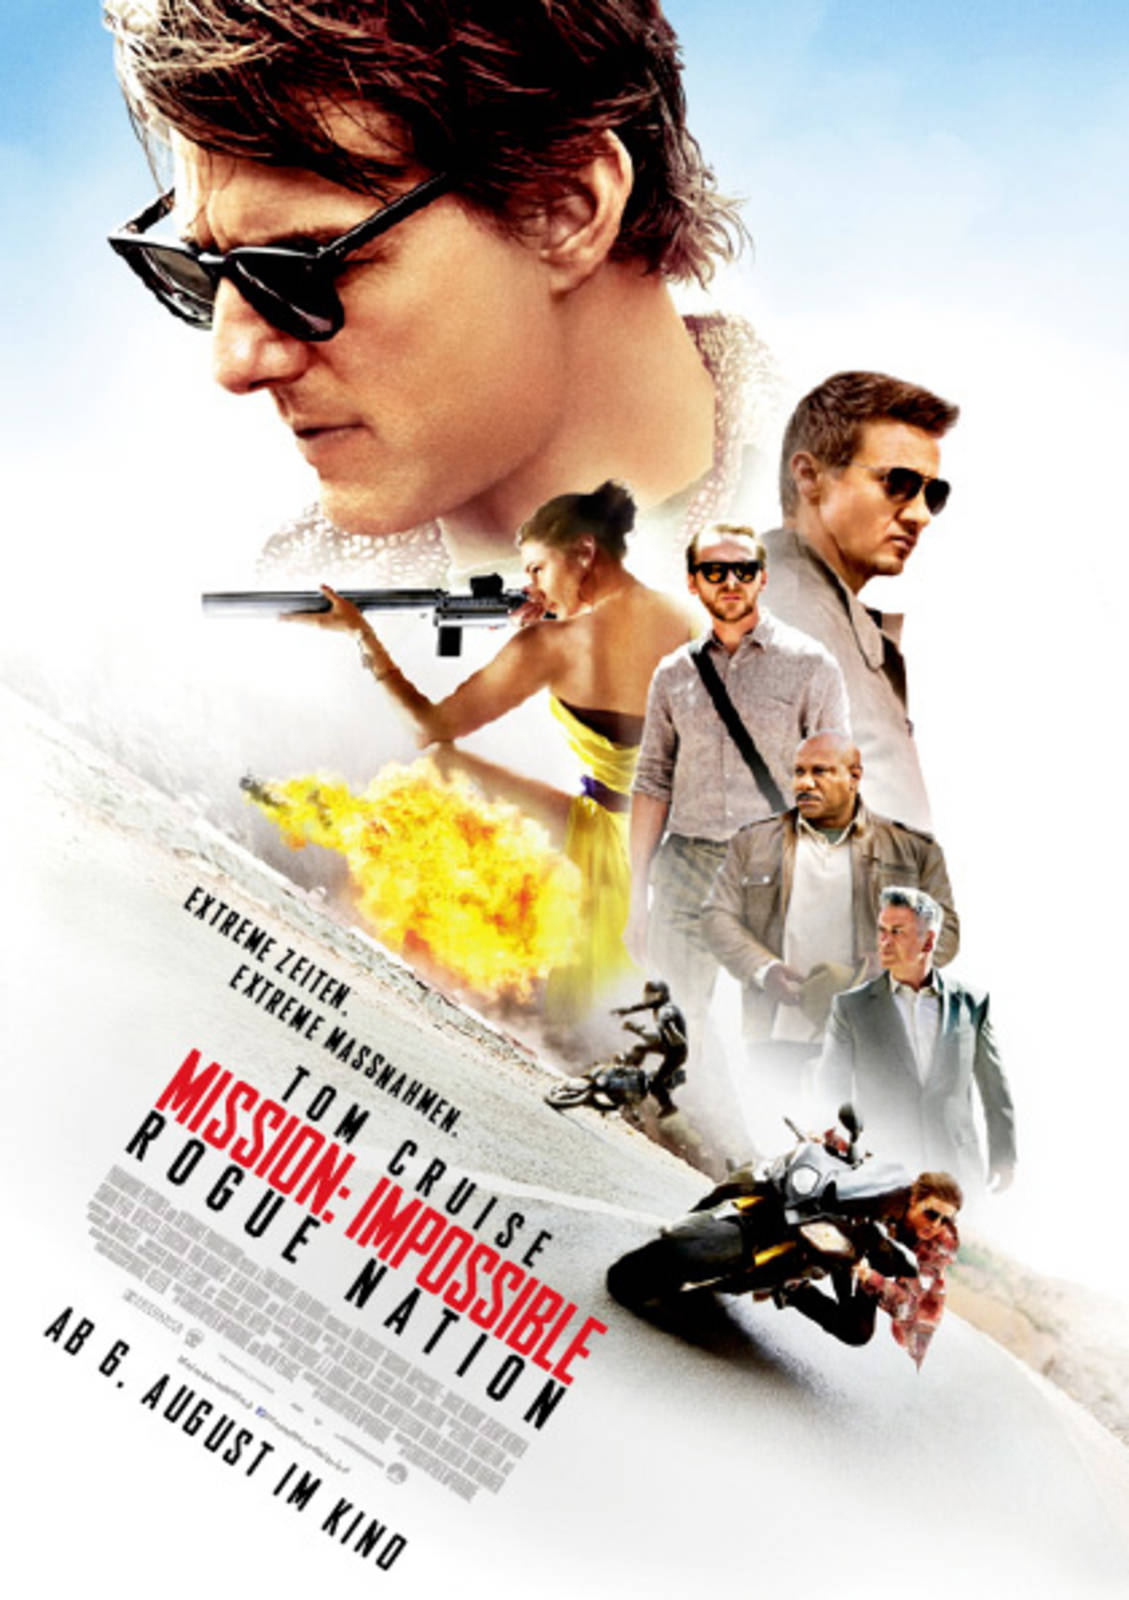 Movie Mission: Impossible - Rogue Nation - Cineman